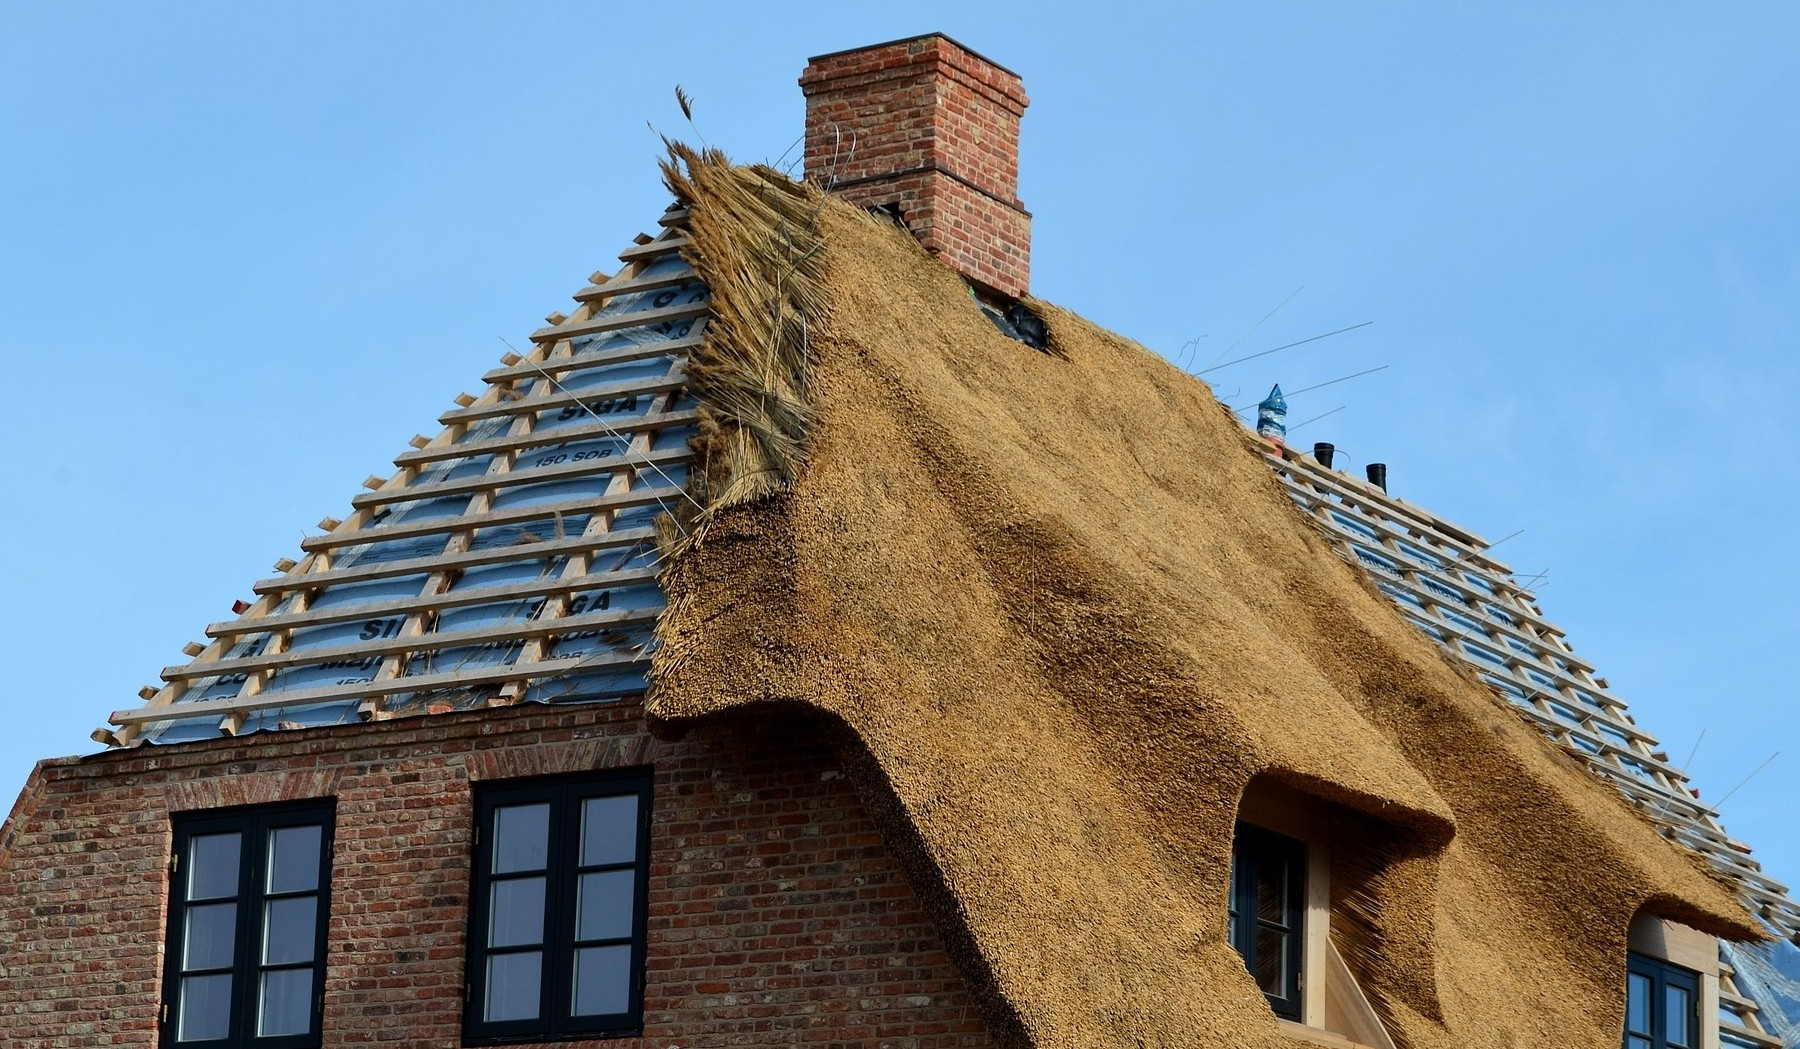 thatched roof 3439537 1920 e1573431689852